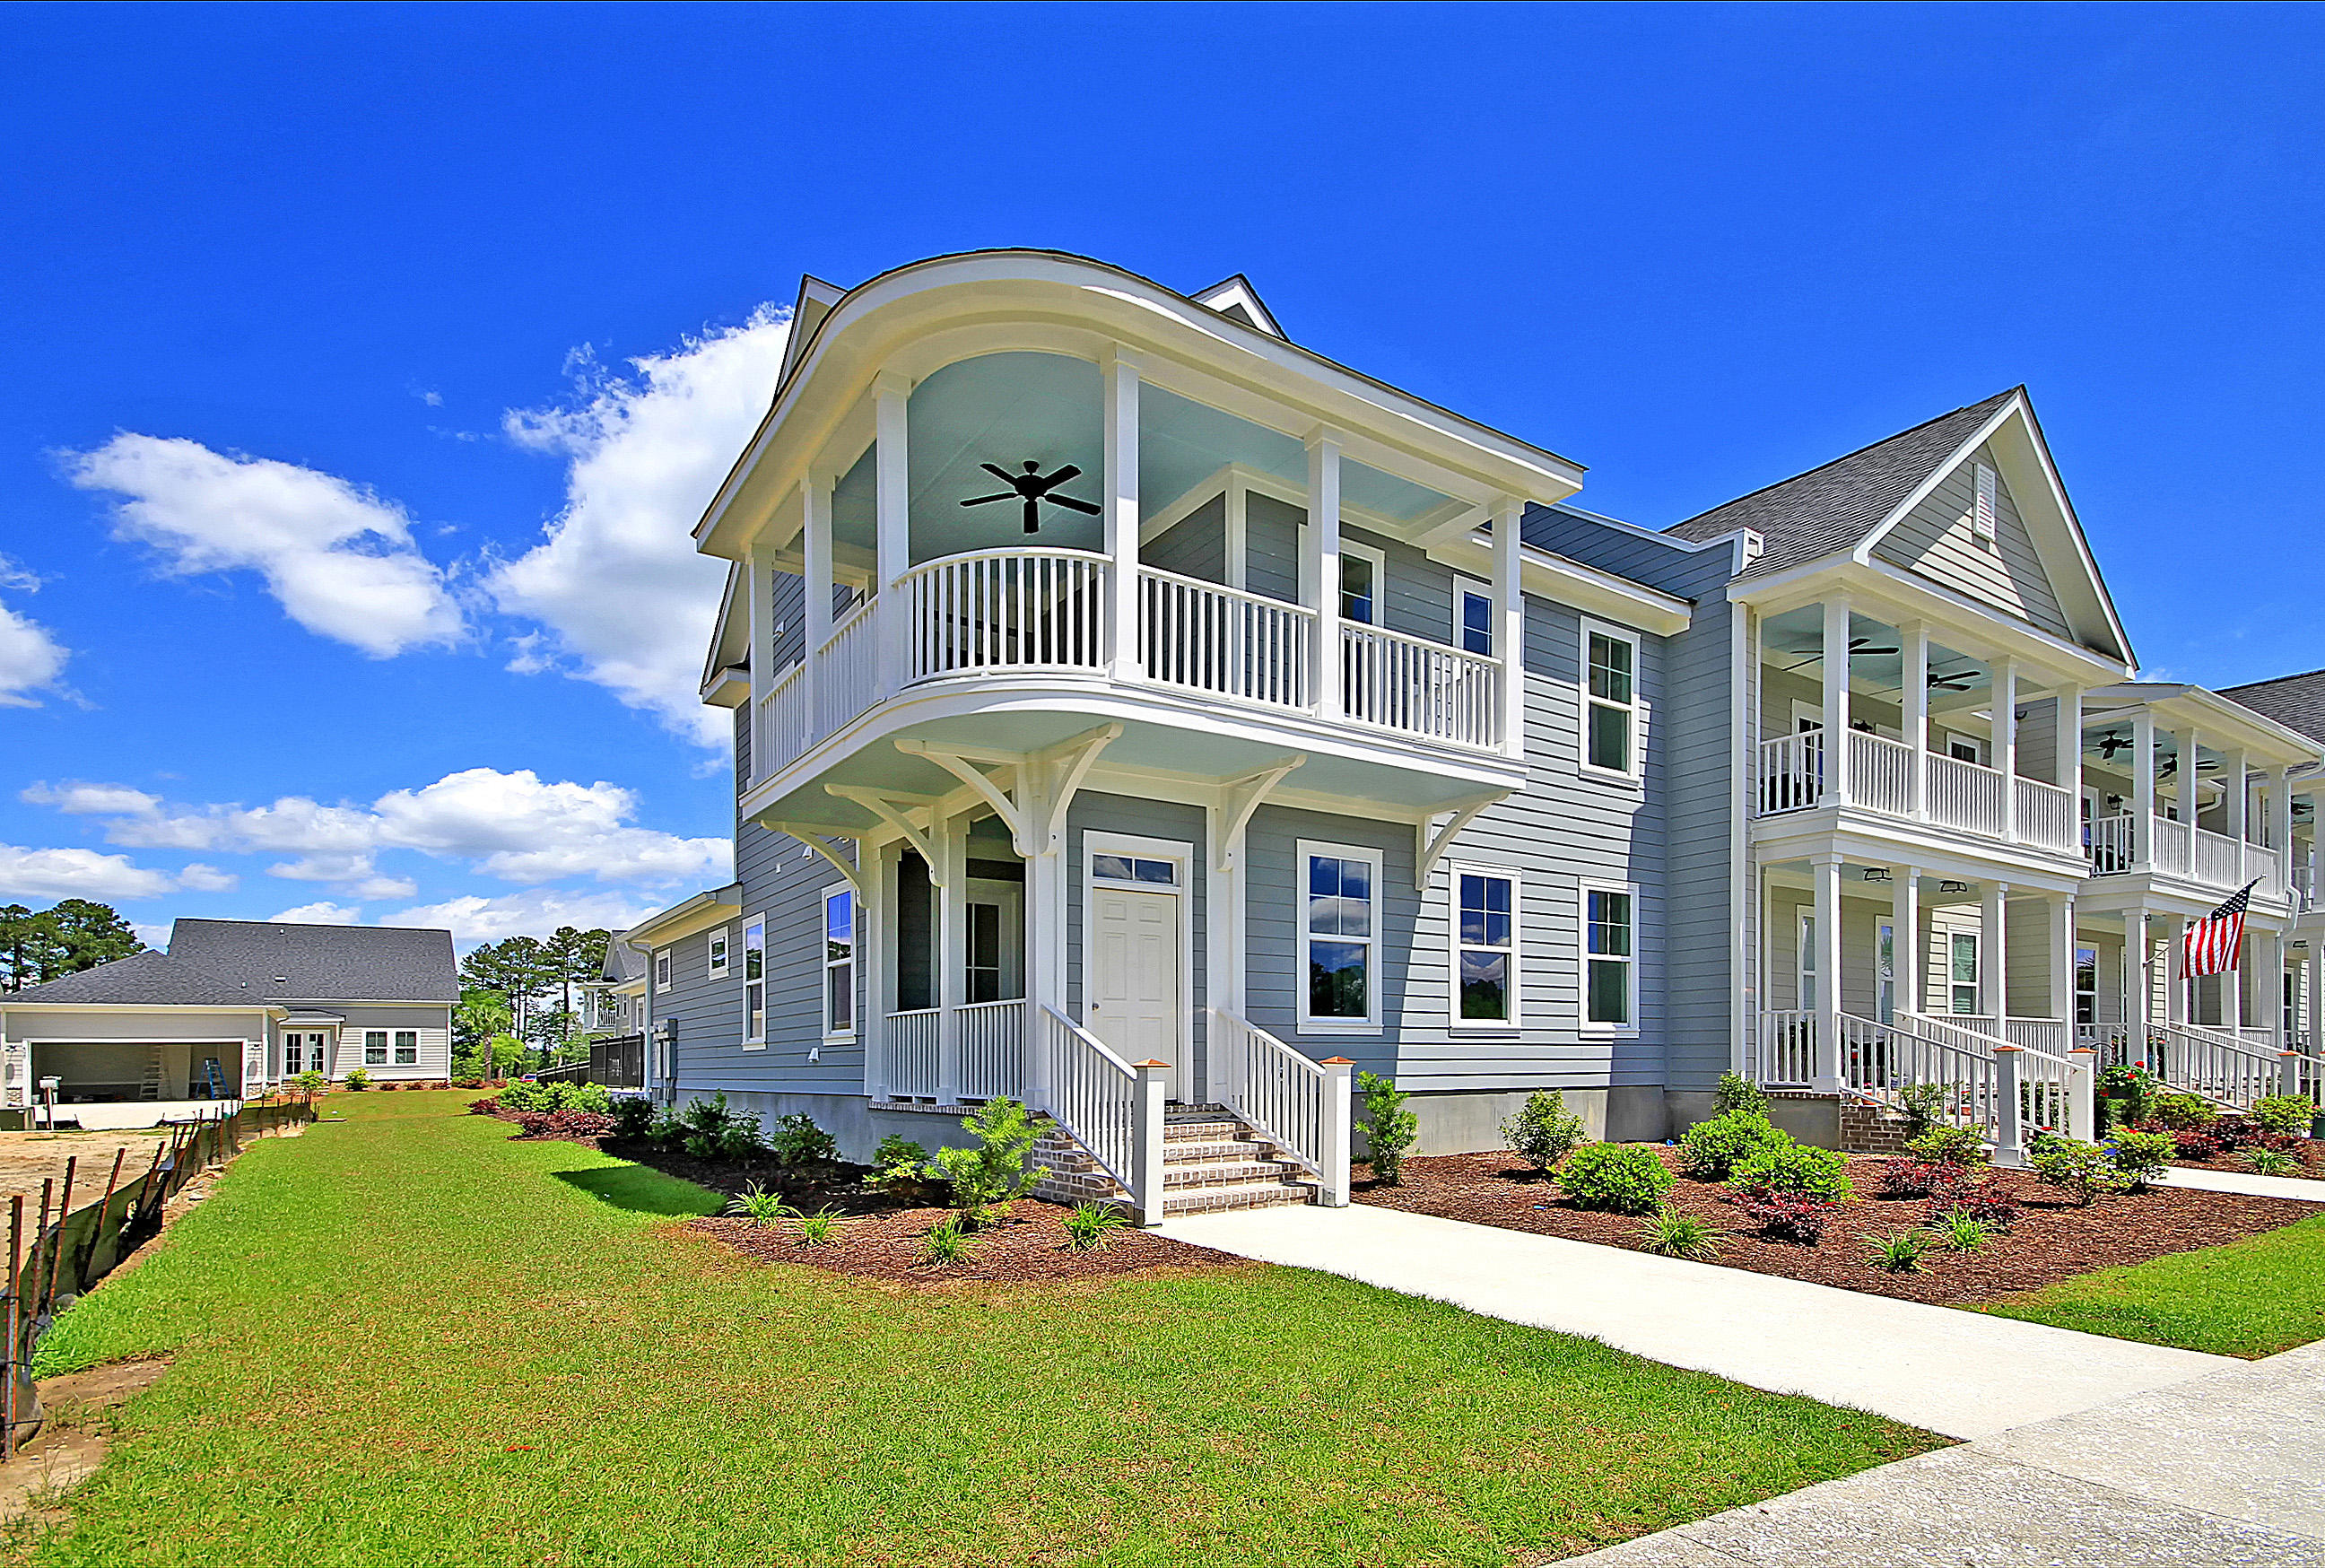 Poplar Grove Homes For Sale - 4025 Capensis, Hollywood, SC - 83